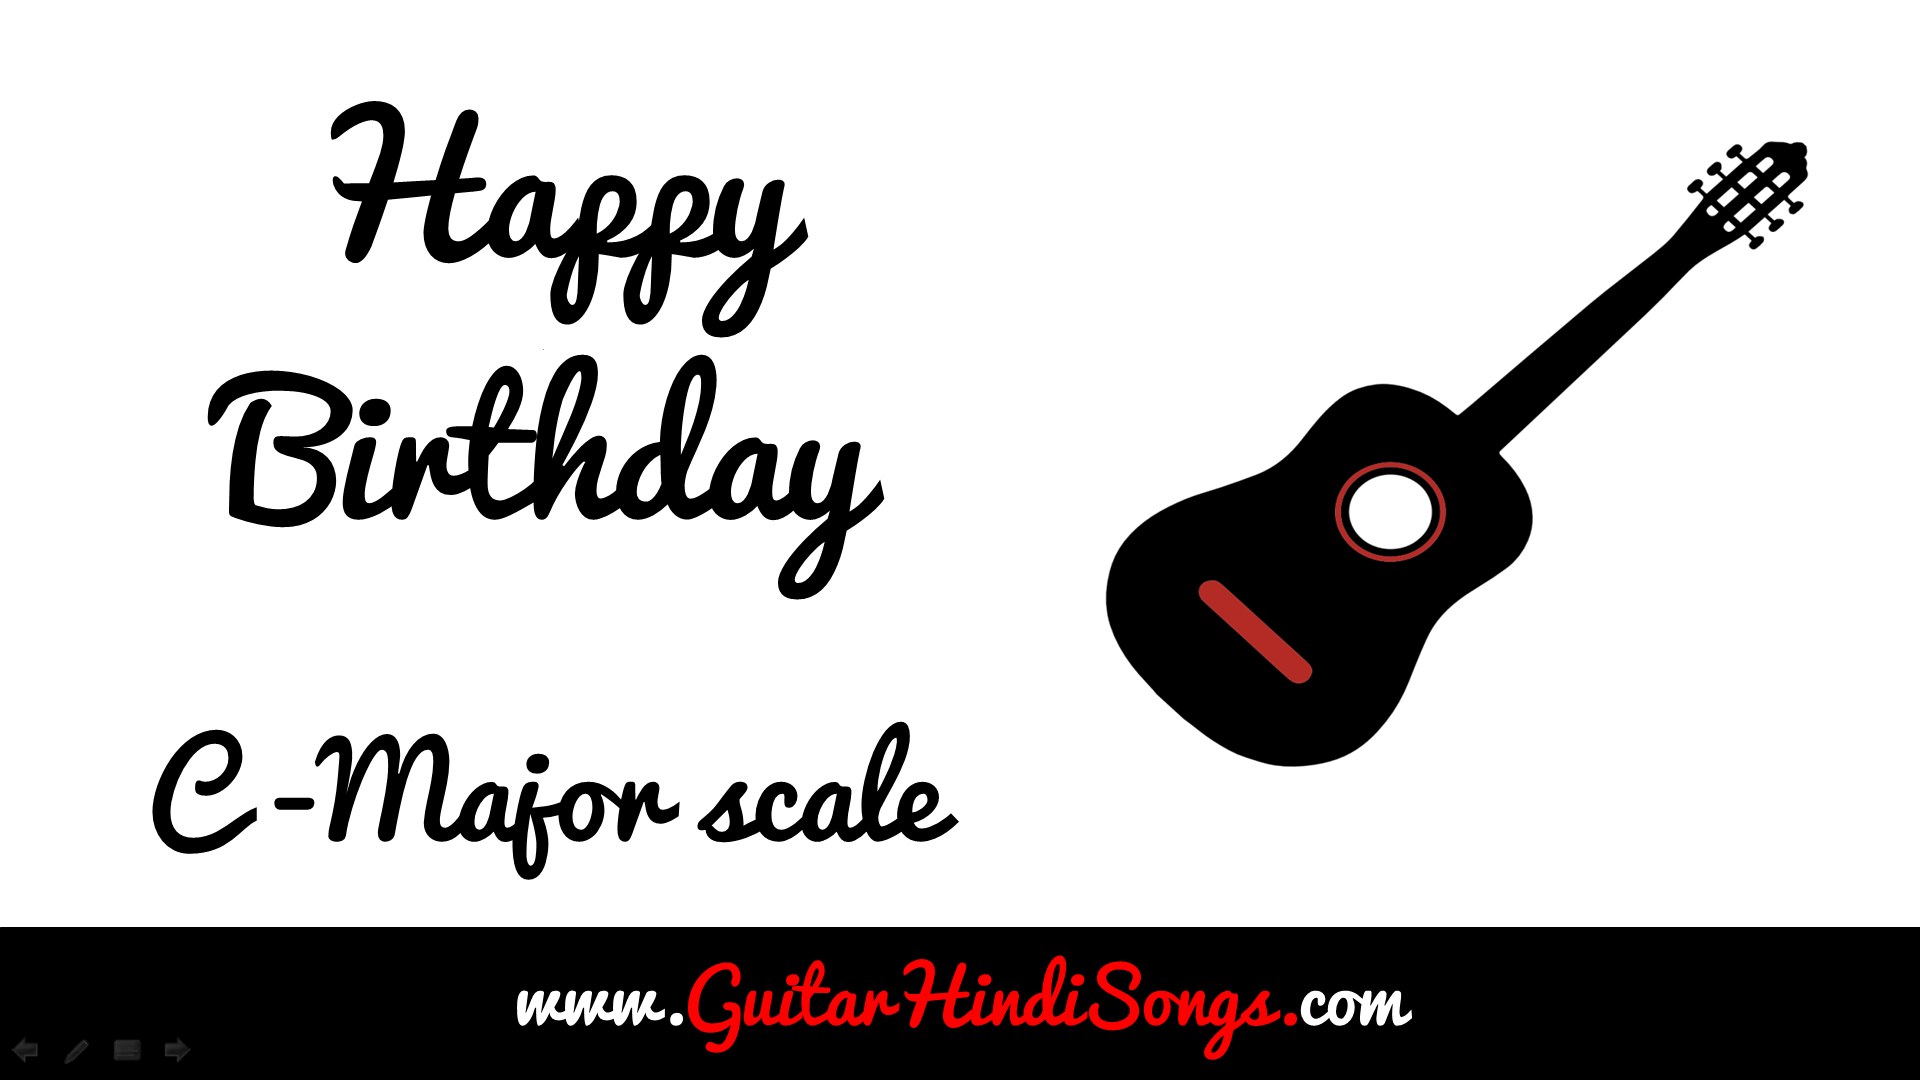 Happy Birthday Guitar Tunes Guitar Hindi Songs 3 minutes and 19 seconds, bitrate: happy birthday guitar tunes